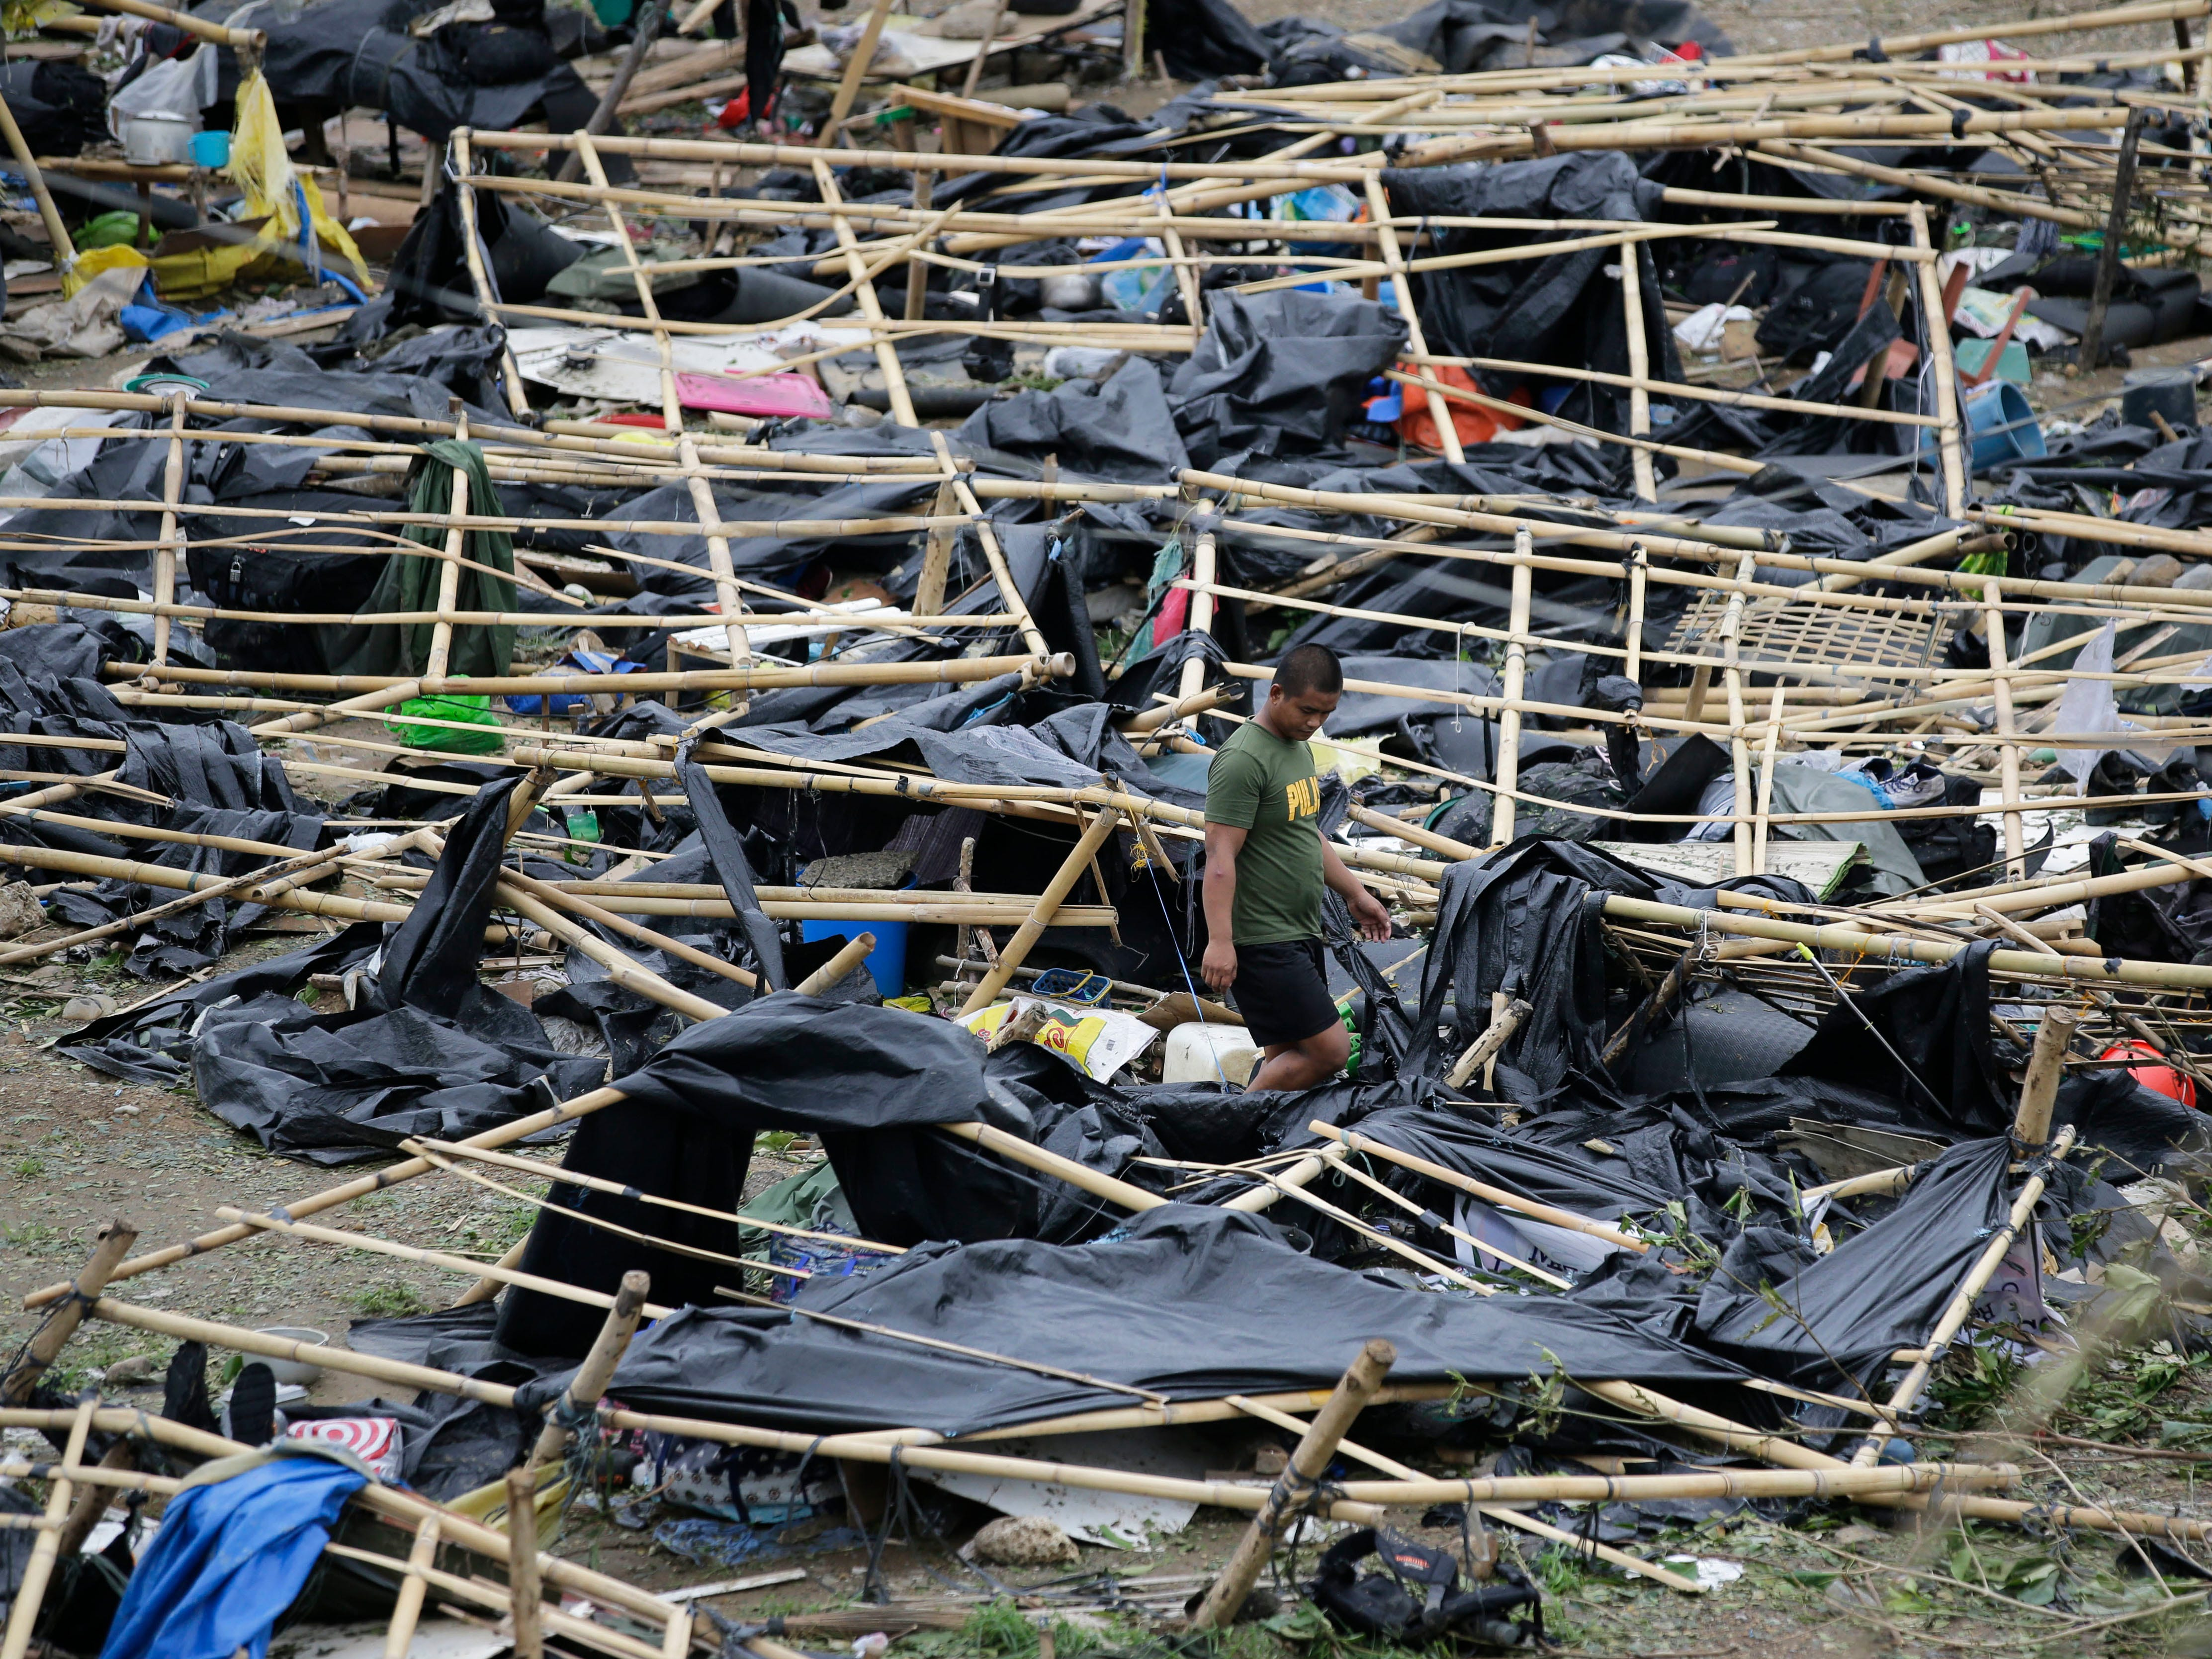 A policeman walks through makeshift tent shelters damaged by strong winds from Typhoon Mangkhut after it barreled across Tuguegarao city in Cagayan province, northeastern Philippines on Sunday, Sept. 16, 2018. Typhoon Mangkhut roared toward densely populated Hong Kong and southern China on Sunday after ravaging across the northern Philippines with ferocious winds and heavy rain causing landslides and collapsed houses.